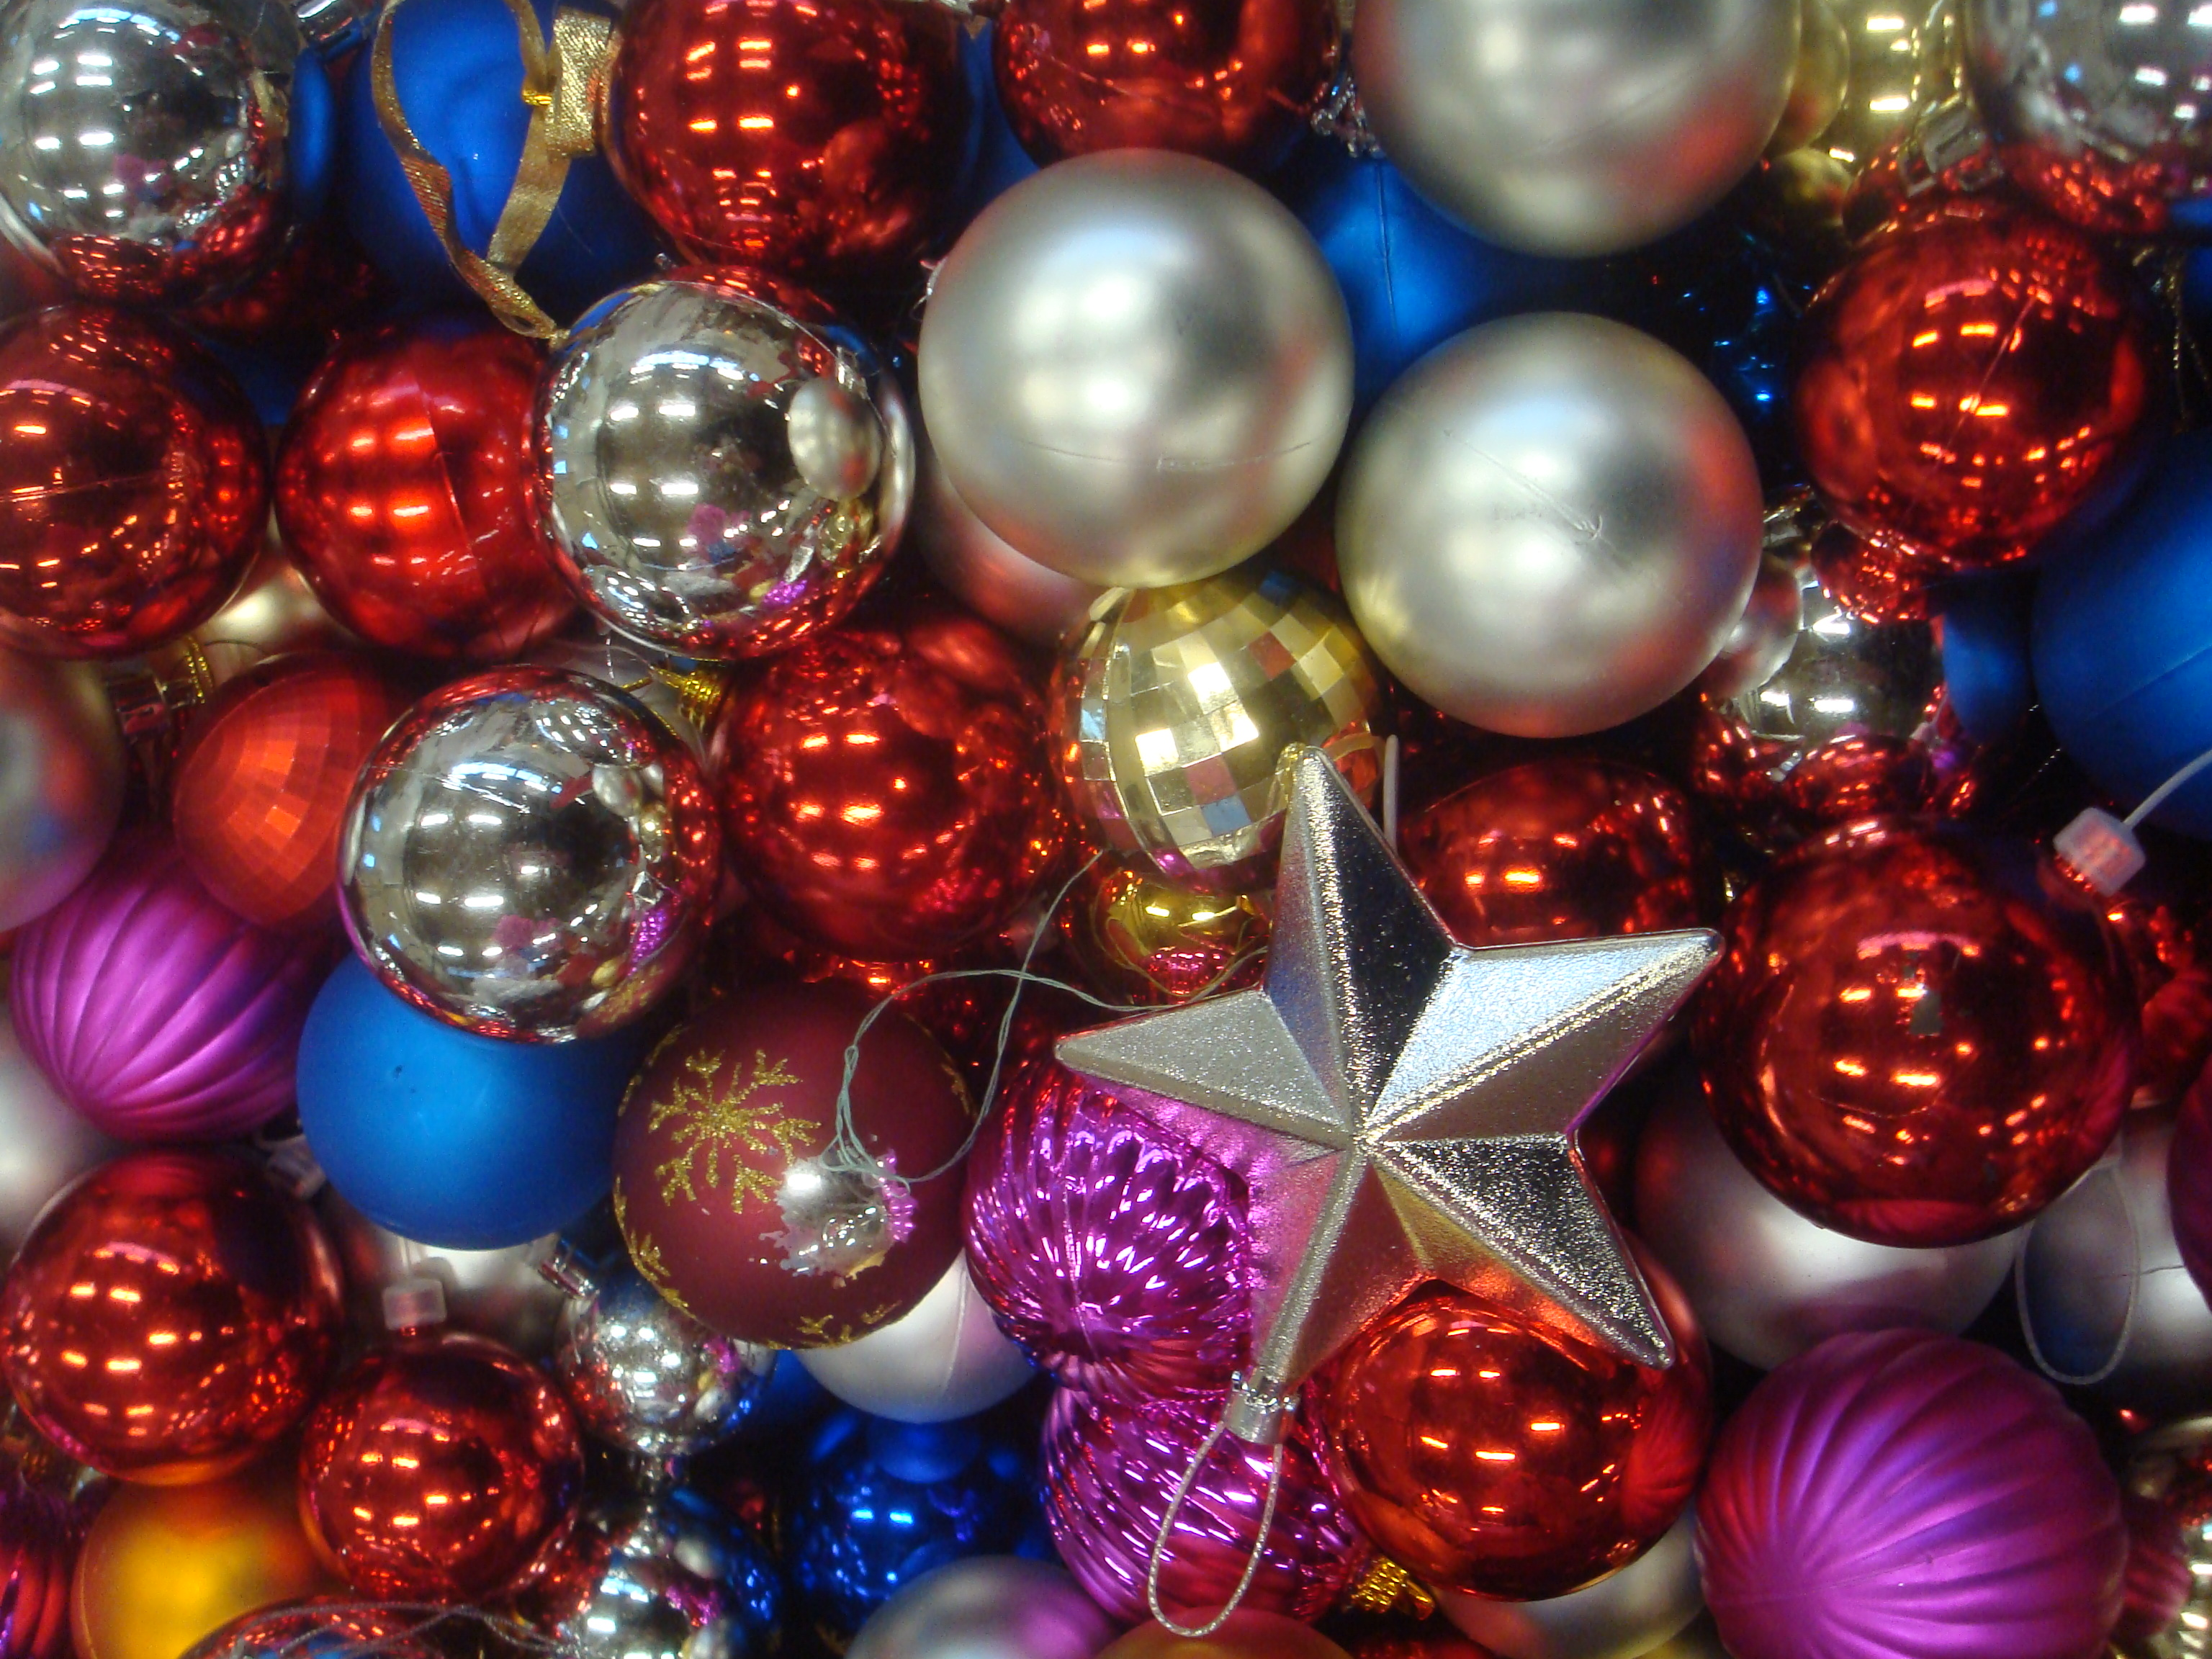 File:Xmas colors, 2013 (photo by David J).jpg - Wikimedia ...